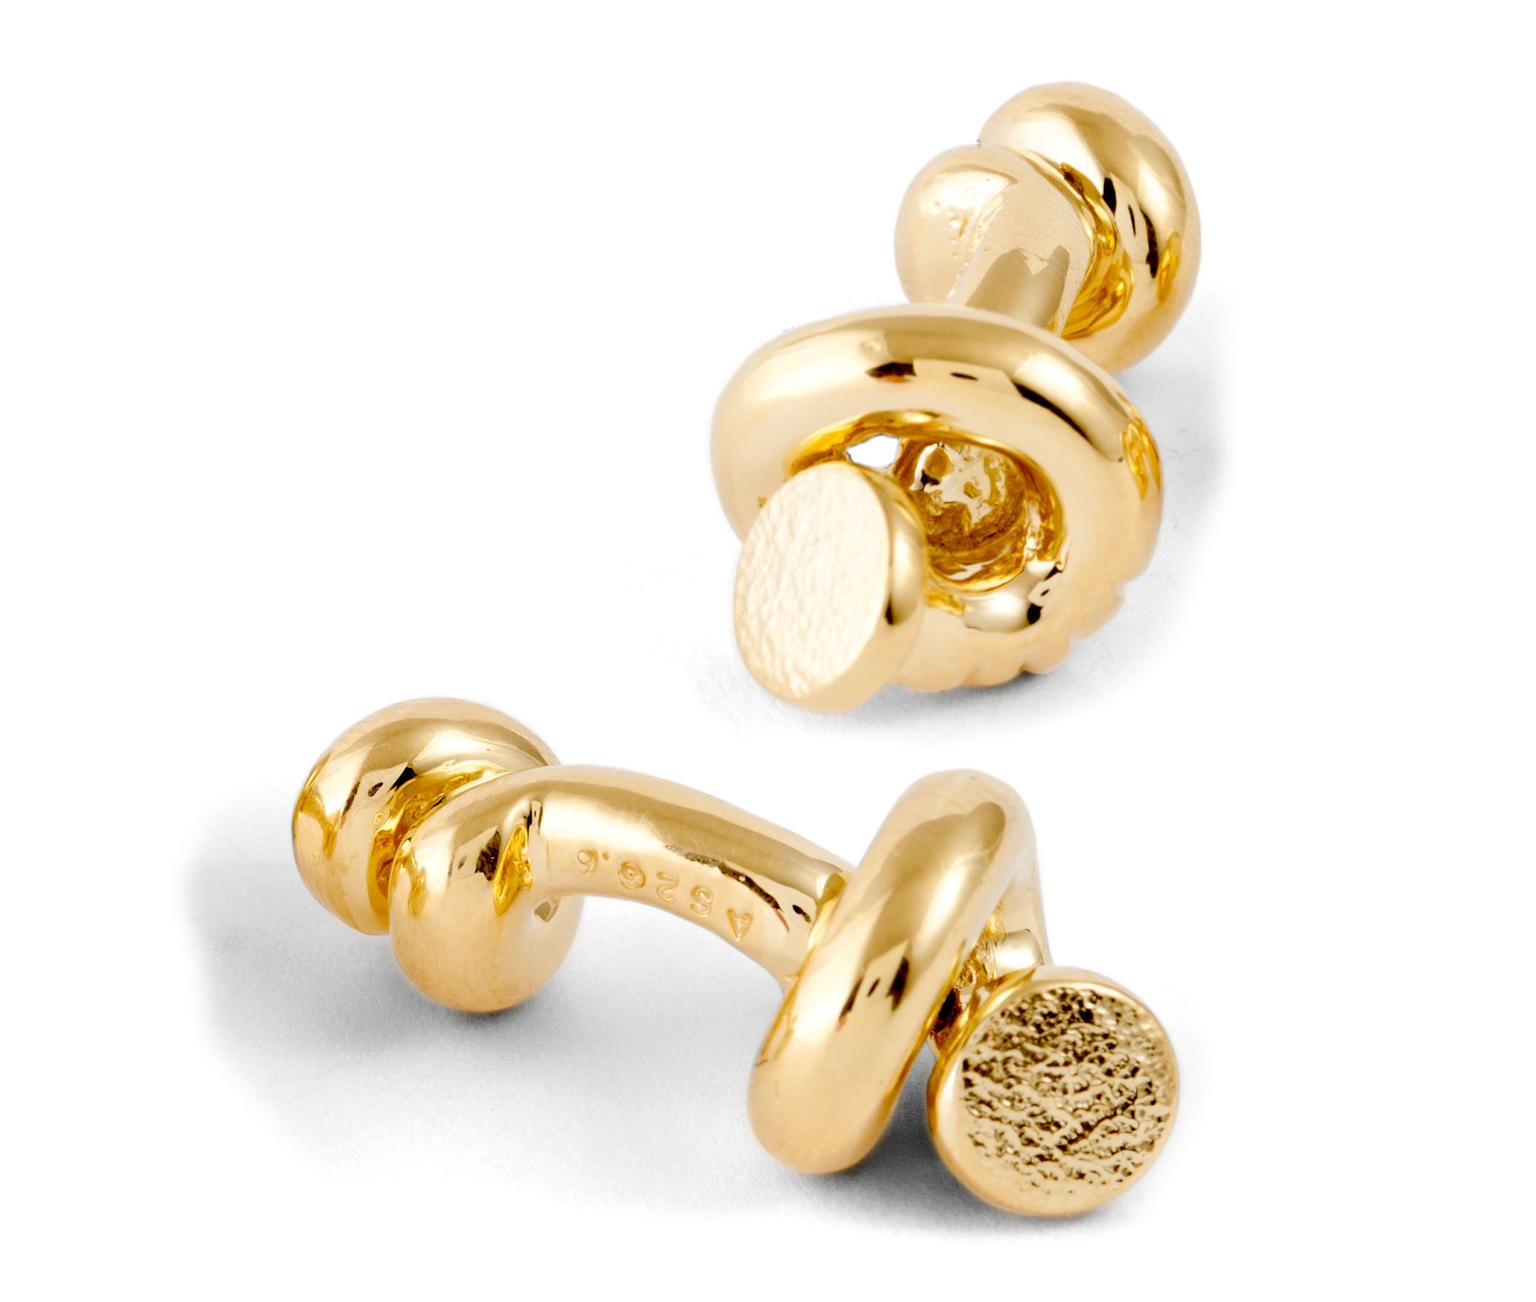 David-Webb-Twisted-Nail-Cufflinks-Zoom